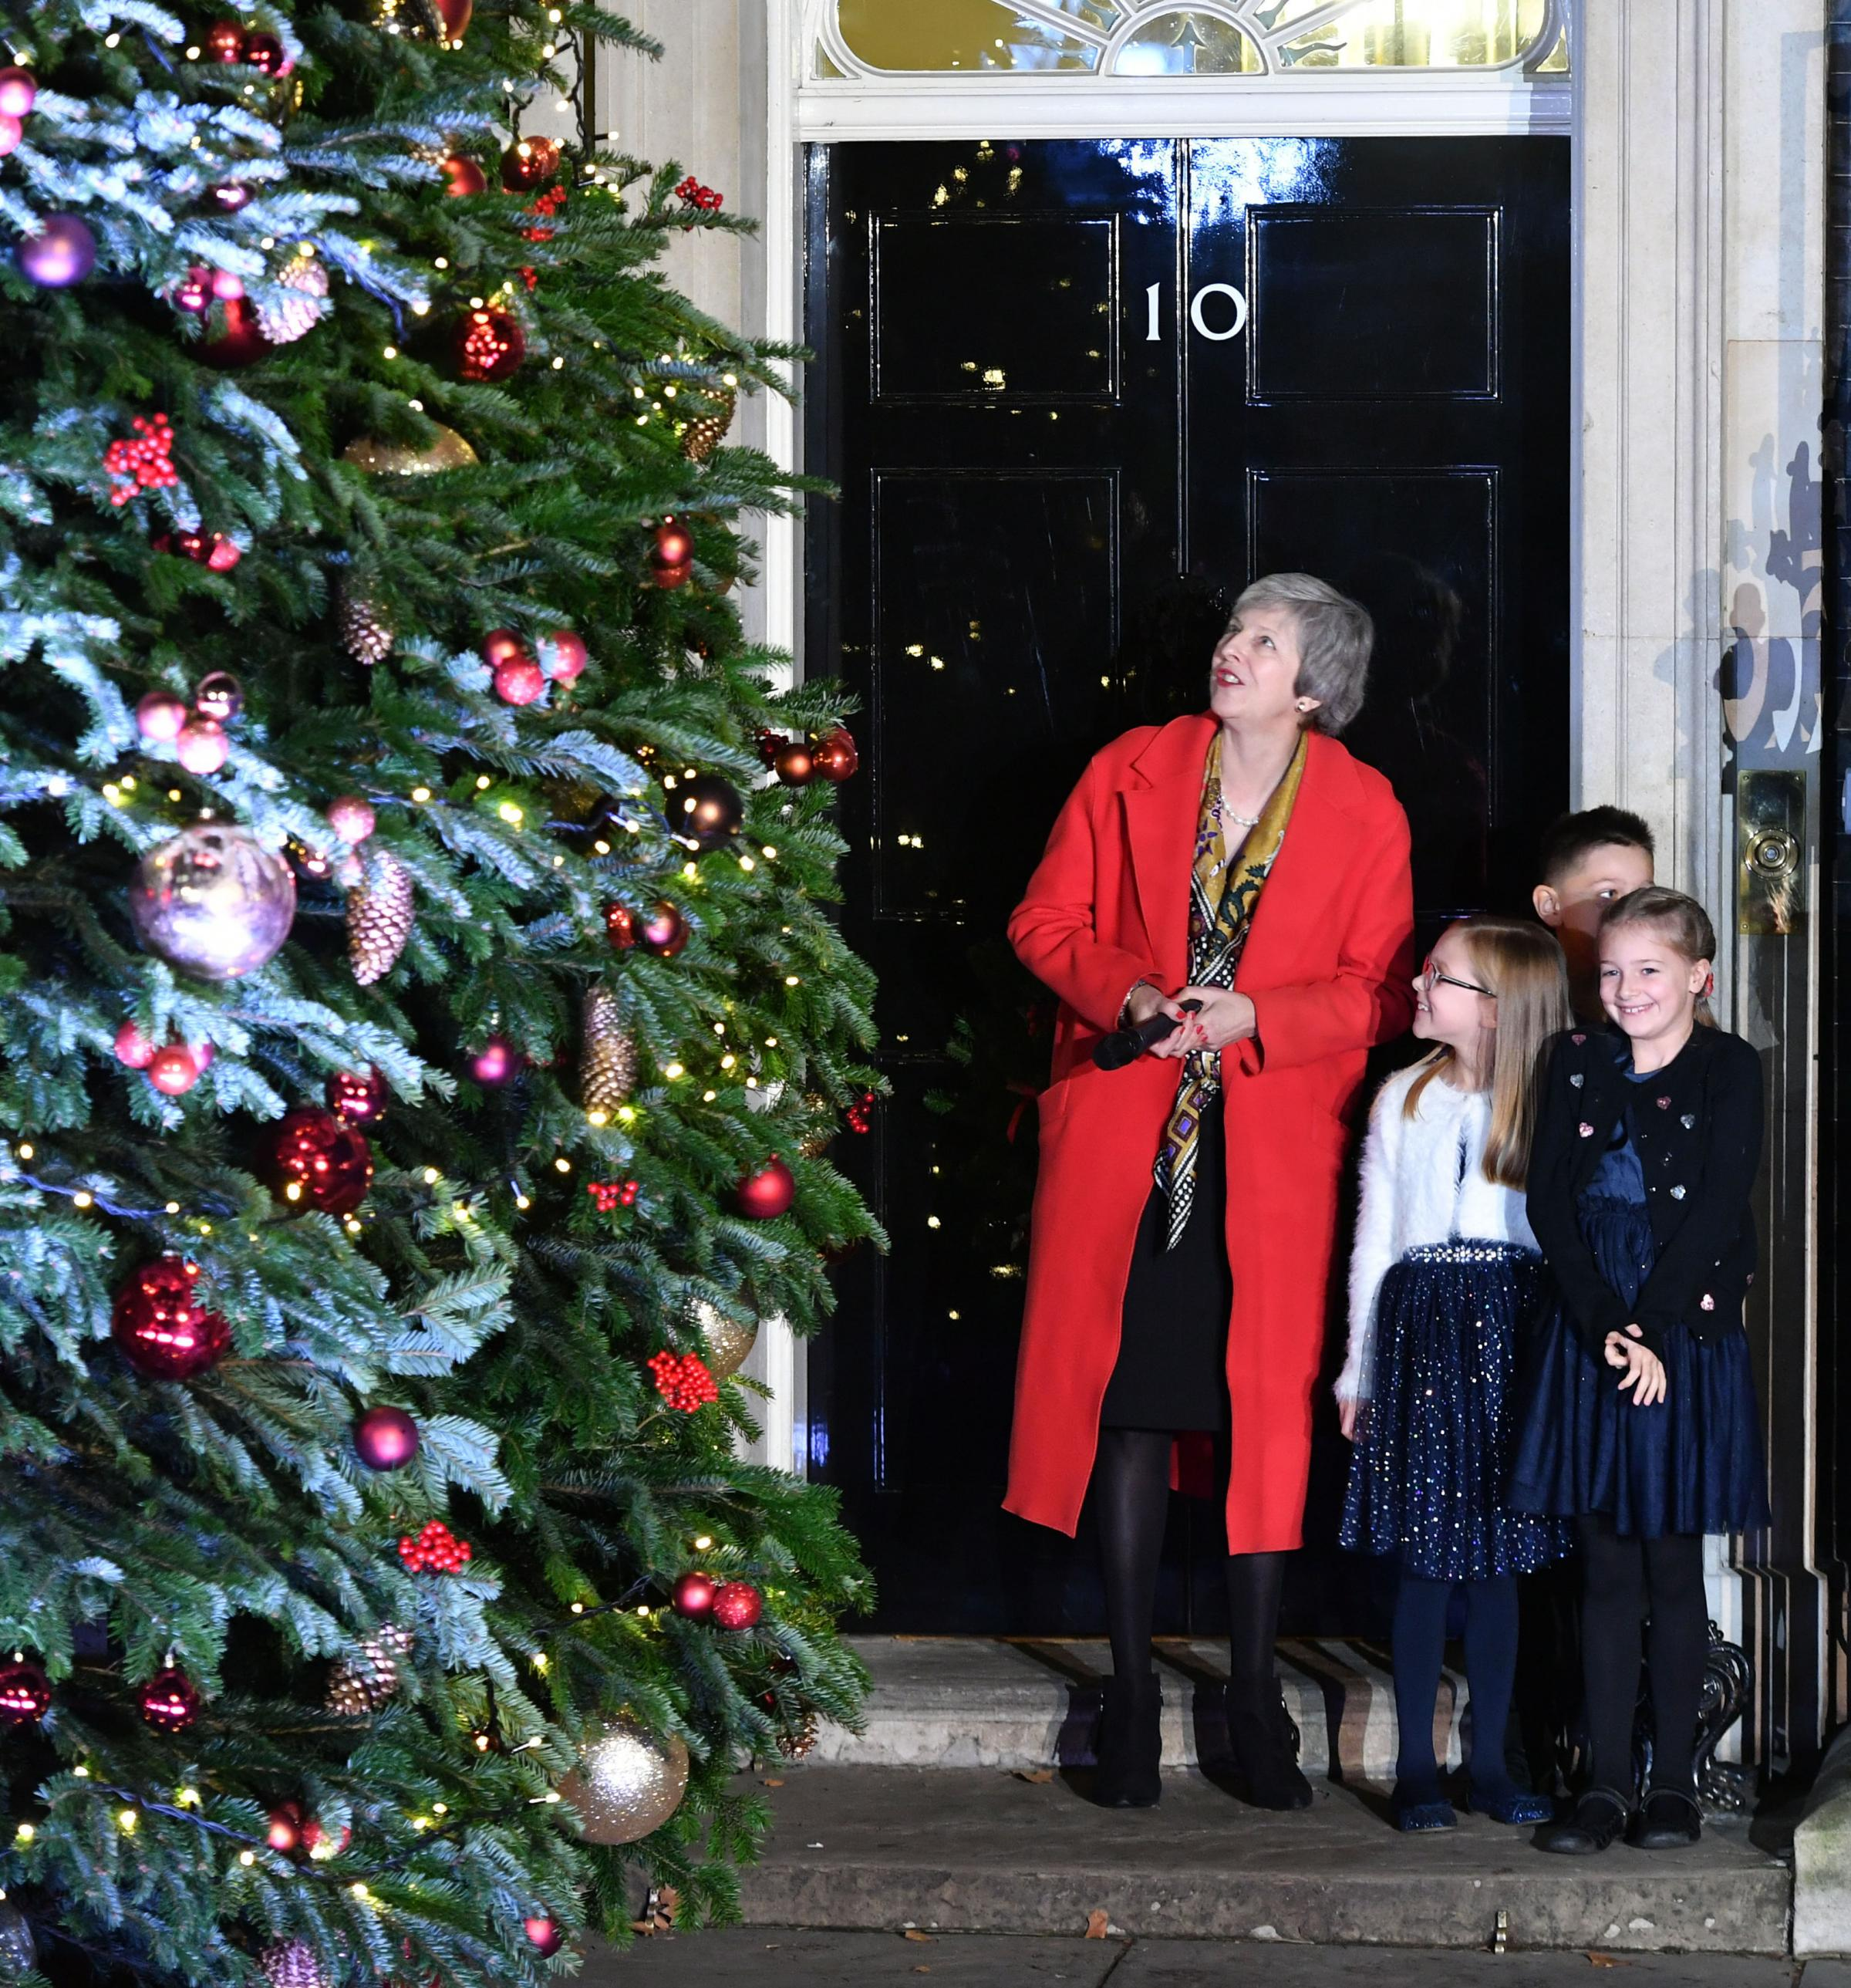 Theresa May switching on the Downing Street Christmas lights. Our columnist ponders her fate should she be a panto character